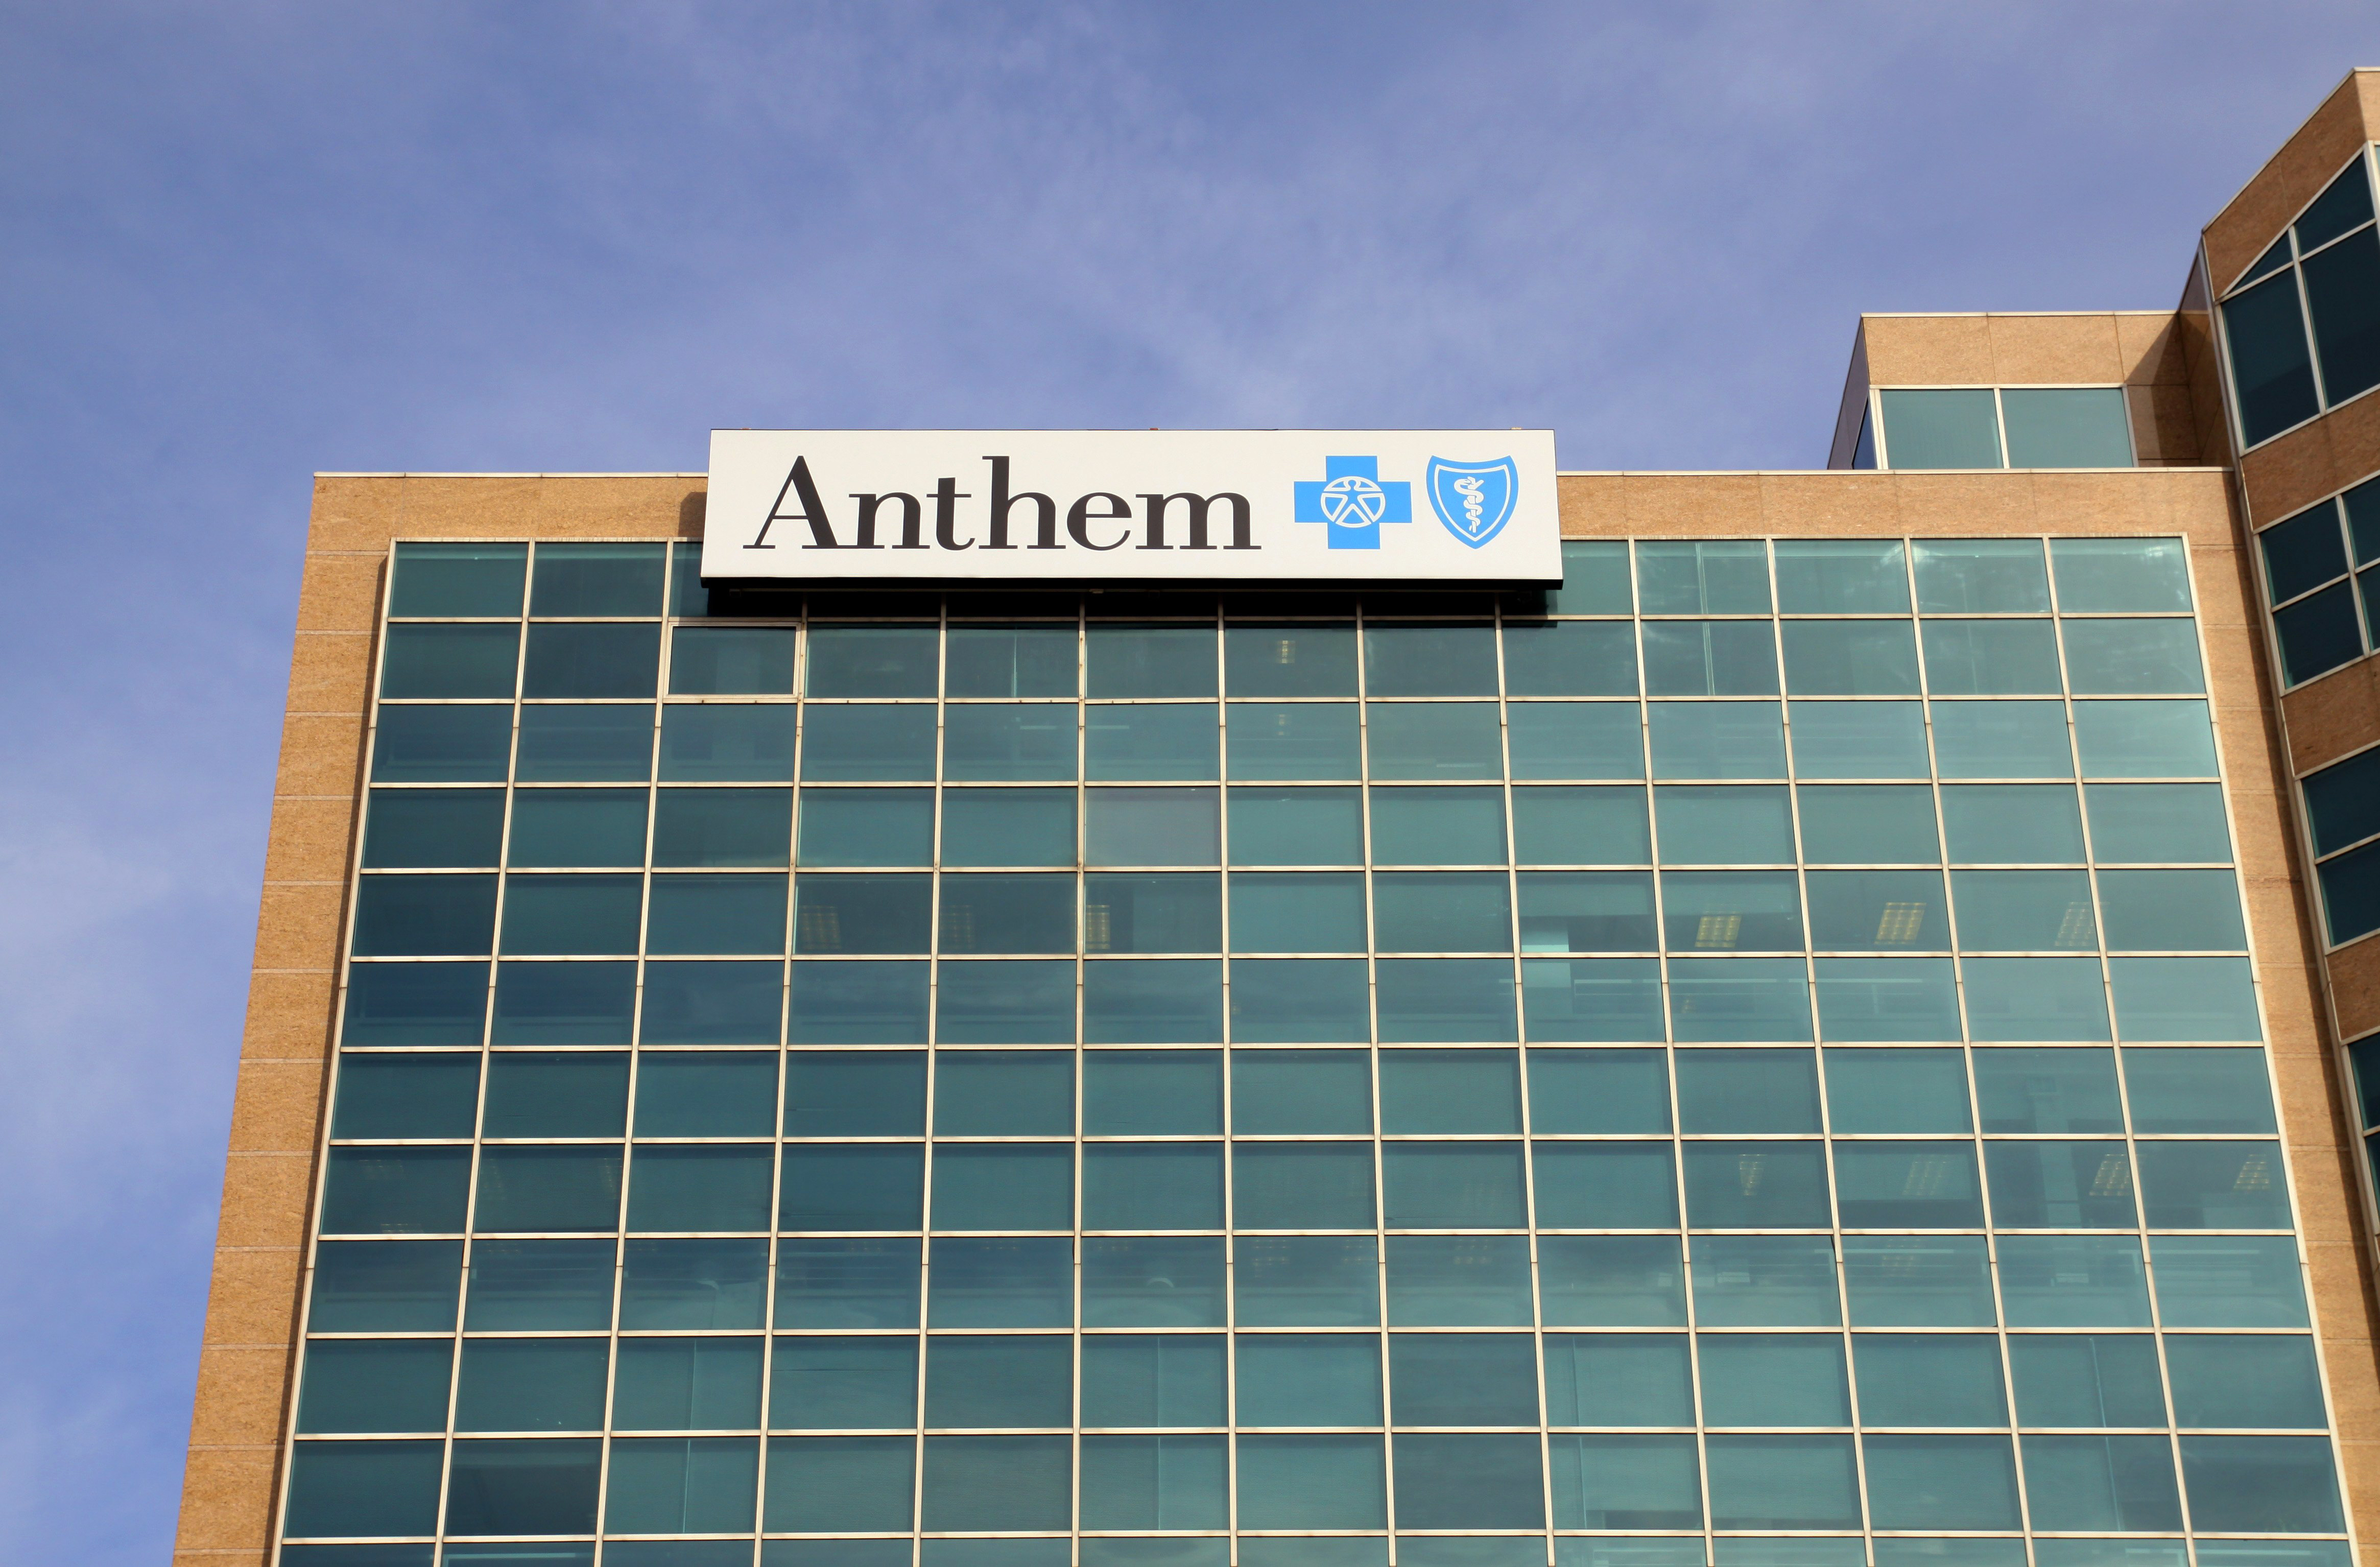 Anthem Blue Cross and Blue Shield building, in St. Louis, Missouri.